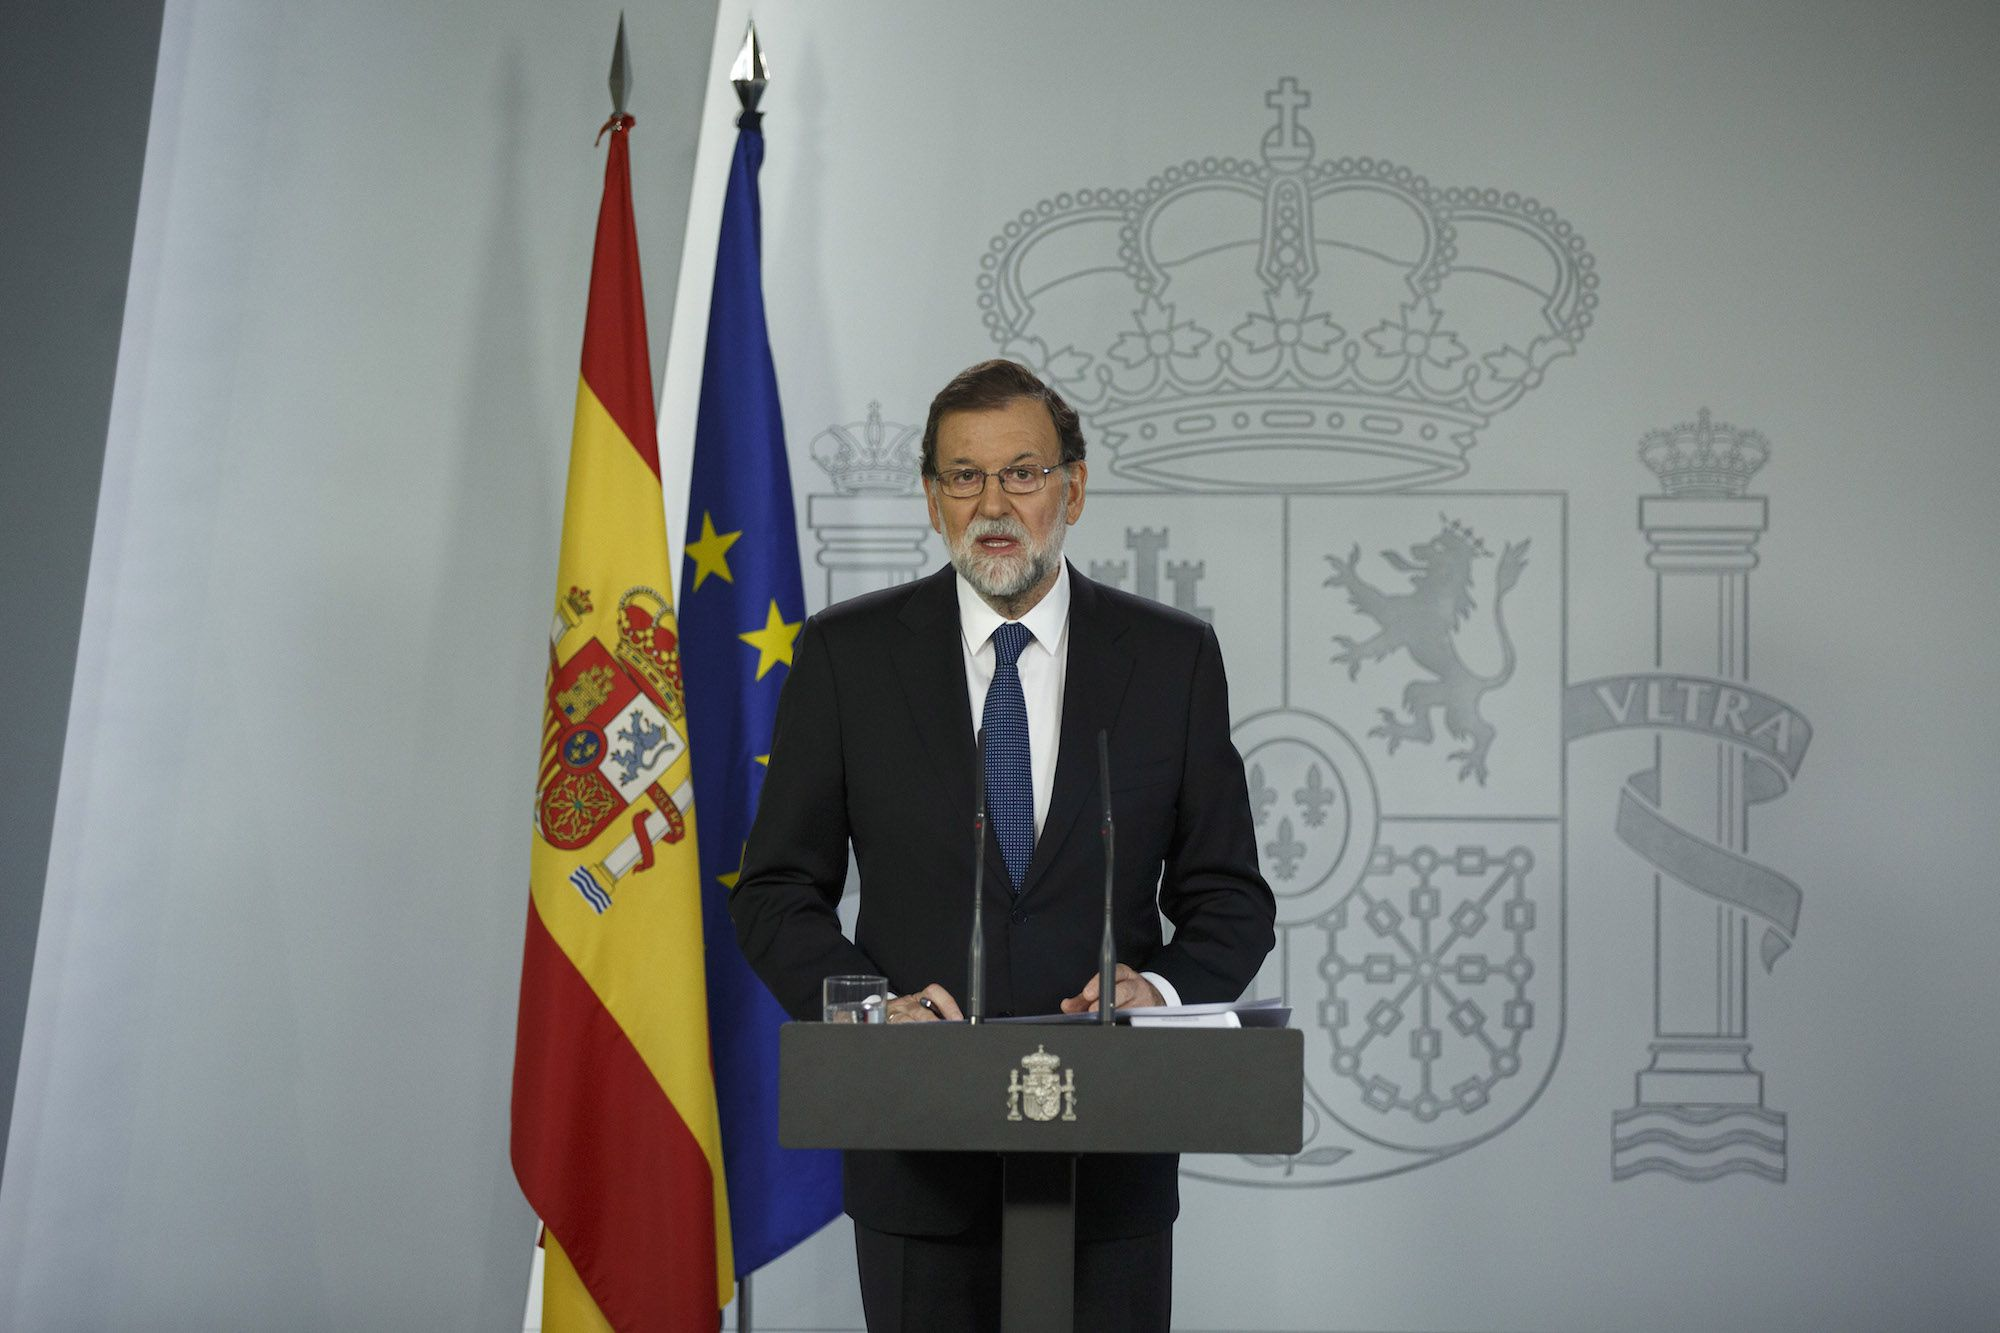 MADRID, SPAIN - OCTOBER 01:  Spanish Prime Minister Mariano Rajoy speaks during a press statement about the Catalonian referendum on October 1, 2017 in Madrid, Spain. More than five million elegible Catalan voters are estimated to visit 2,315 polling stations today for the Catalonia's referendum on independence from Spain. The Spanish government in Madrid has declared the vote illegal and undemocratic.  (Photo by Pablo Blazquez Dominguez/Getty Images)